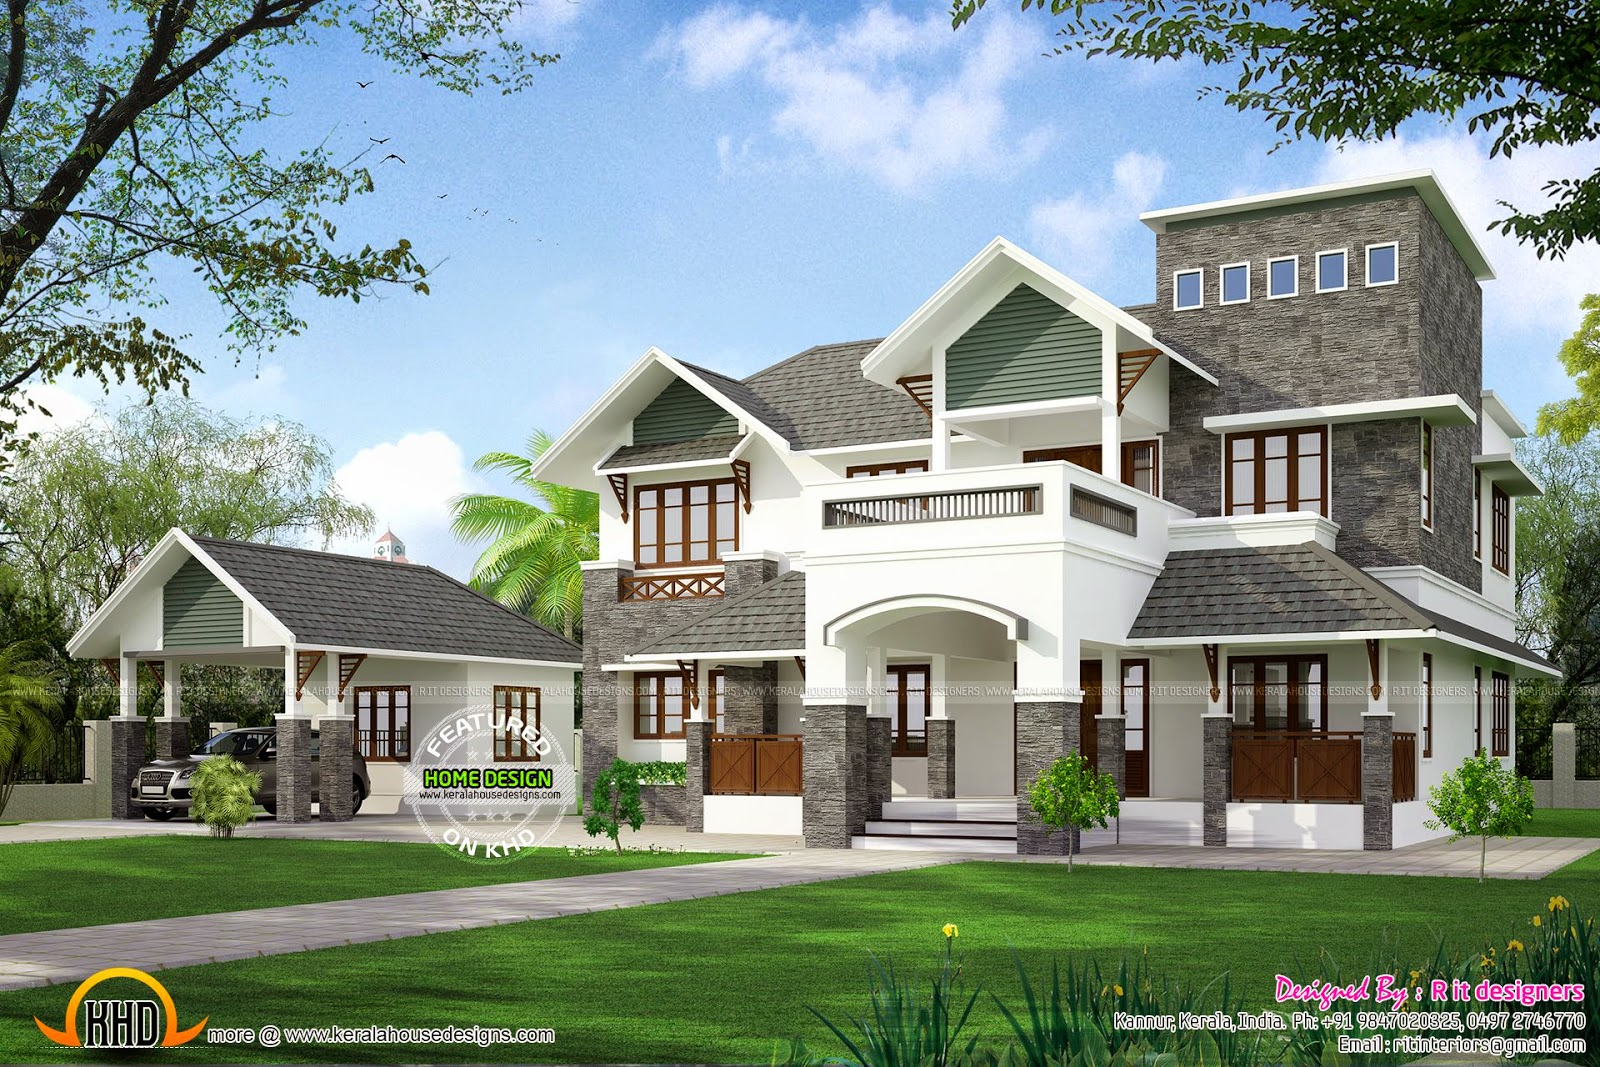 House at koorg kerala home design and floor plans for House designers